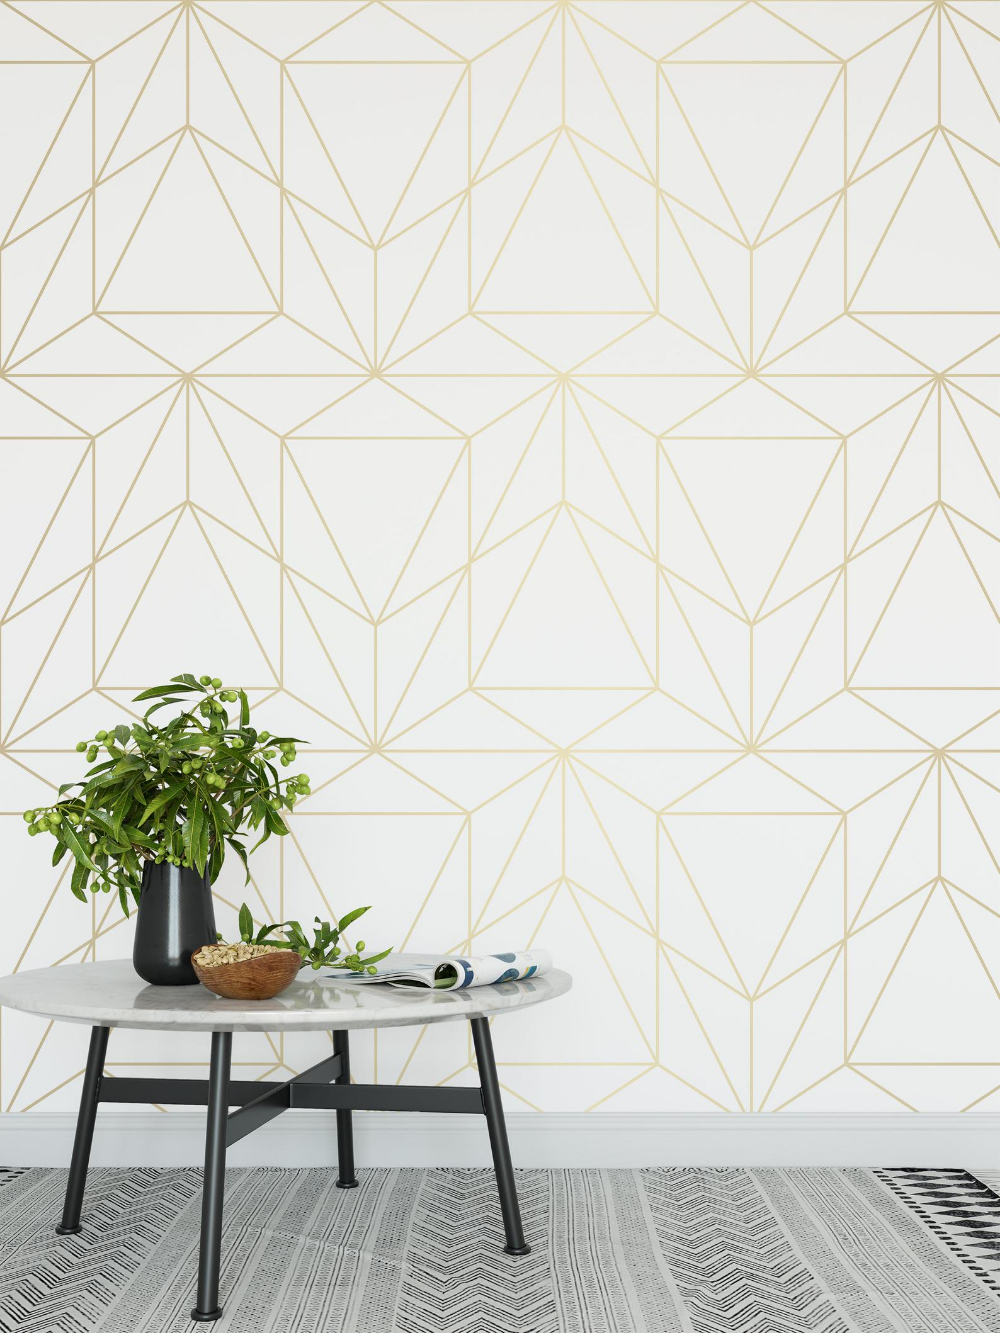 Peel And Stick Wallpaper Self Adhesive Wallpaper Removable Etsy Gold Geometric Wallpaper White And Gold Wallpaper Geometric Wallpaper